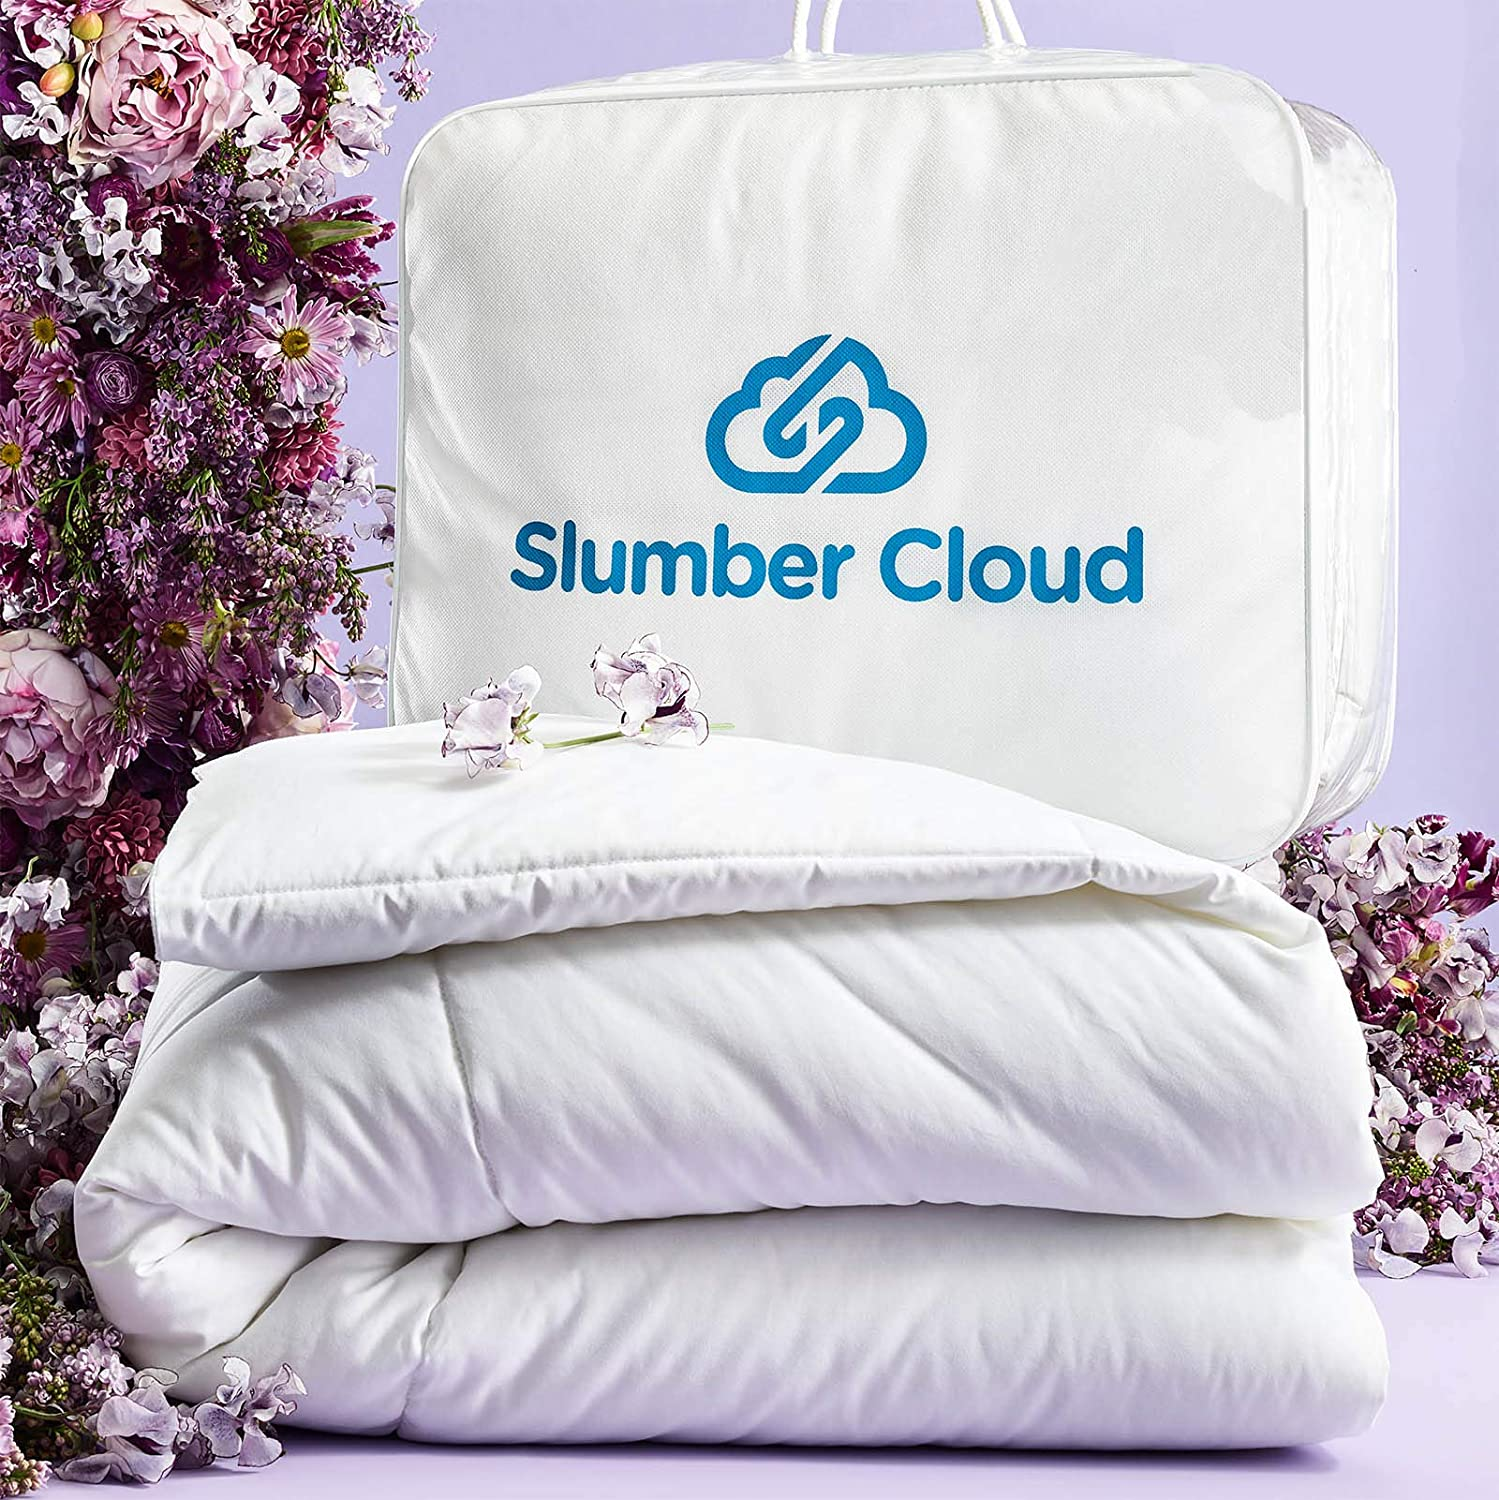 SLUMBER CLOUD Lightweight Cumulus Comforter - NASA Temperature Regulation Technology - Down Alternative Cooling Comforter - Hypoallergenic (King, Lightweight)